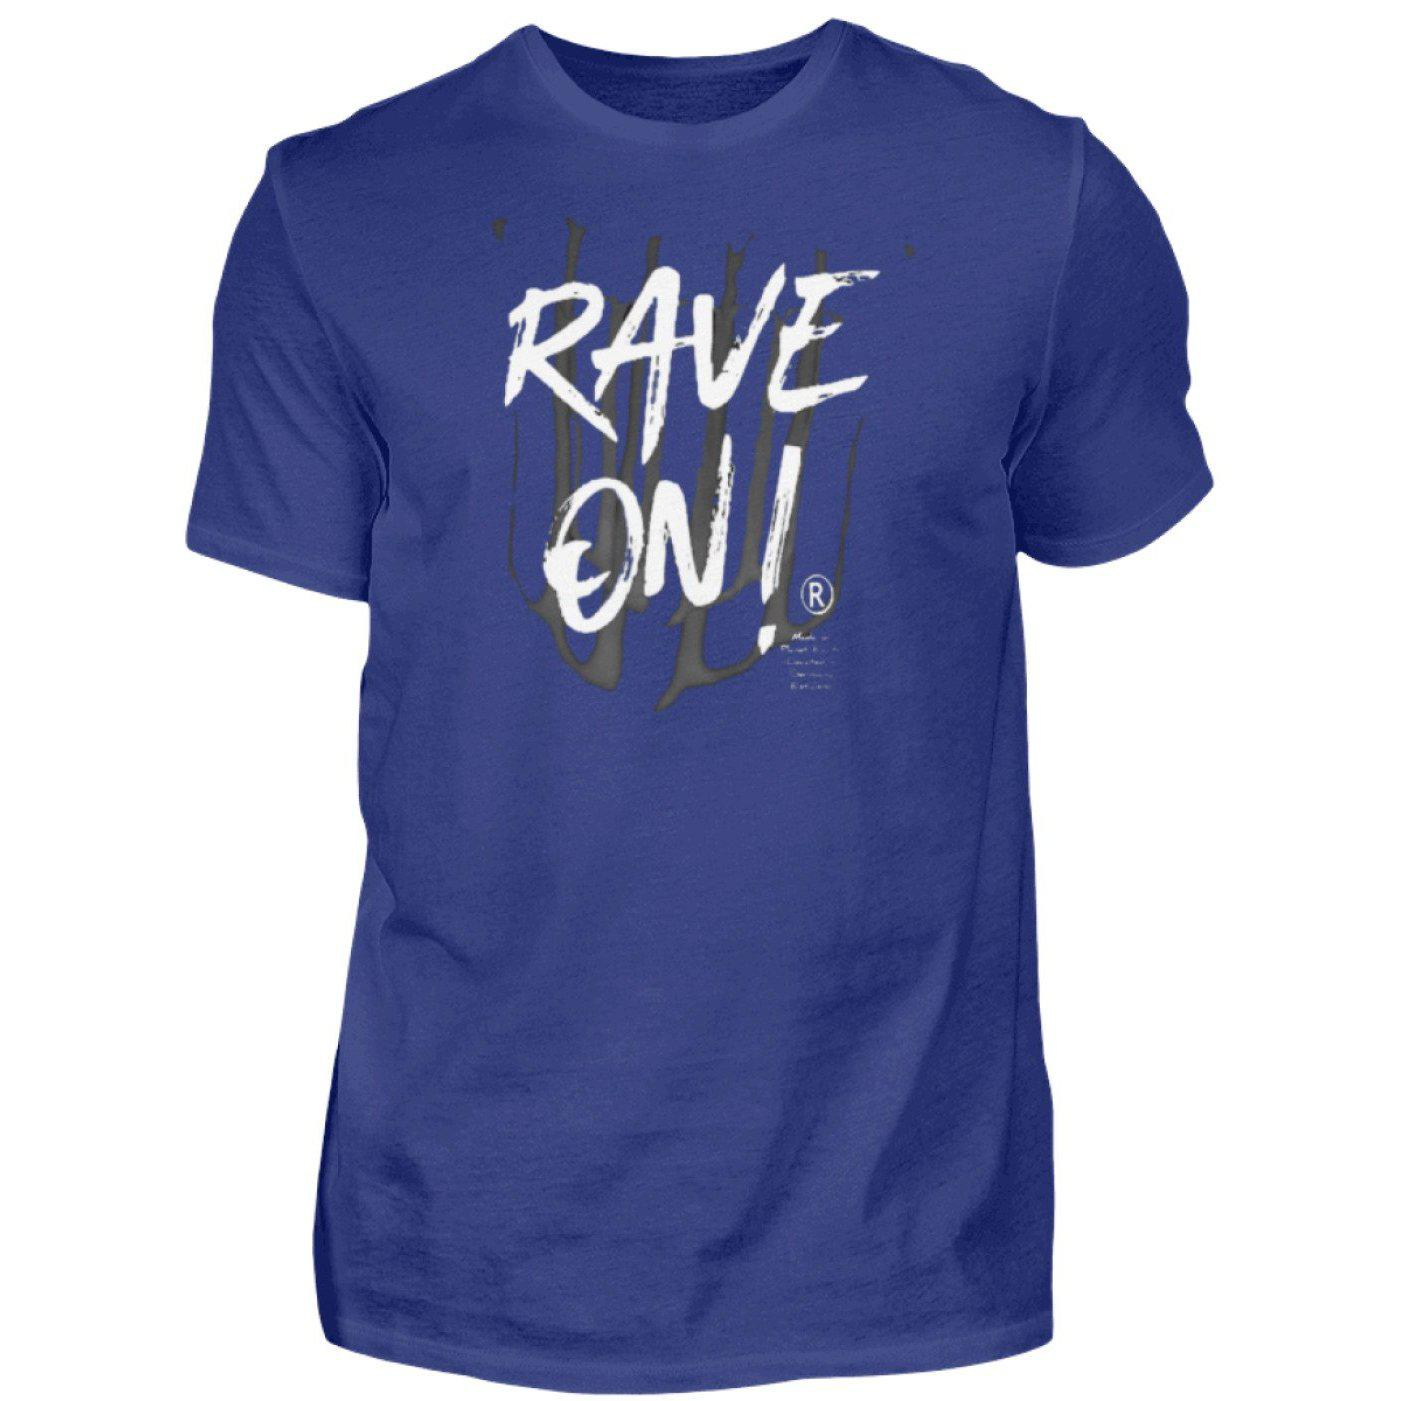 Rave On!® - Made On Planet Earth B2k20 - Herren Premiumshirt-Herren Premium Shirt-Dark Royal-S-Rave-On! I www.rave-on.shop I Deine Rave & Techno Szene Shop I brand, Design - Rave On!® - Made On Planet Earth B2k20, Global recommendation, madeonpr, marke, on, rave, raver, techno - Sexy Festival Streetwear , Clubwear & Raver Style